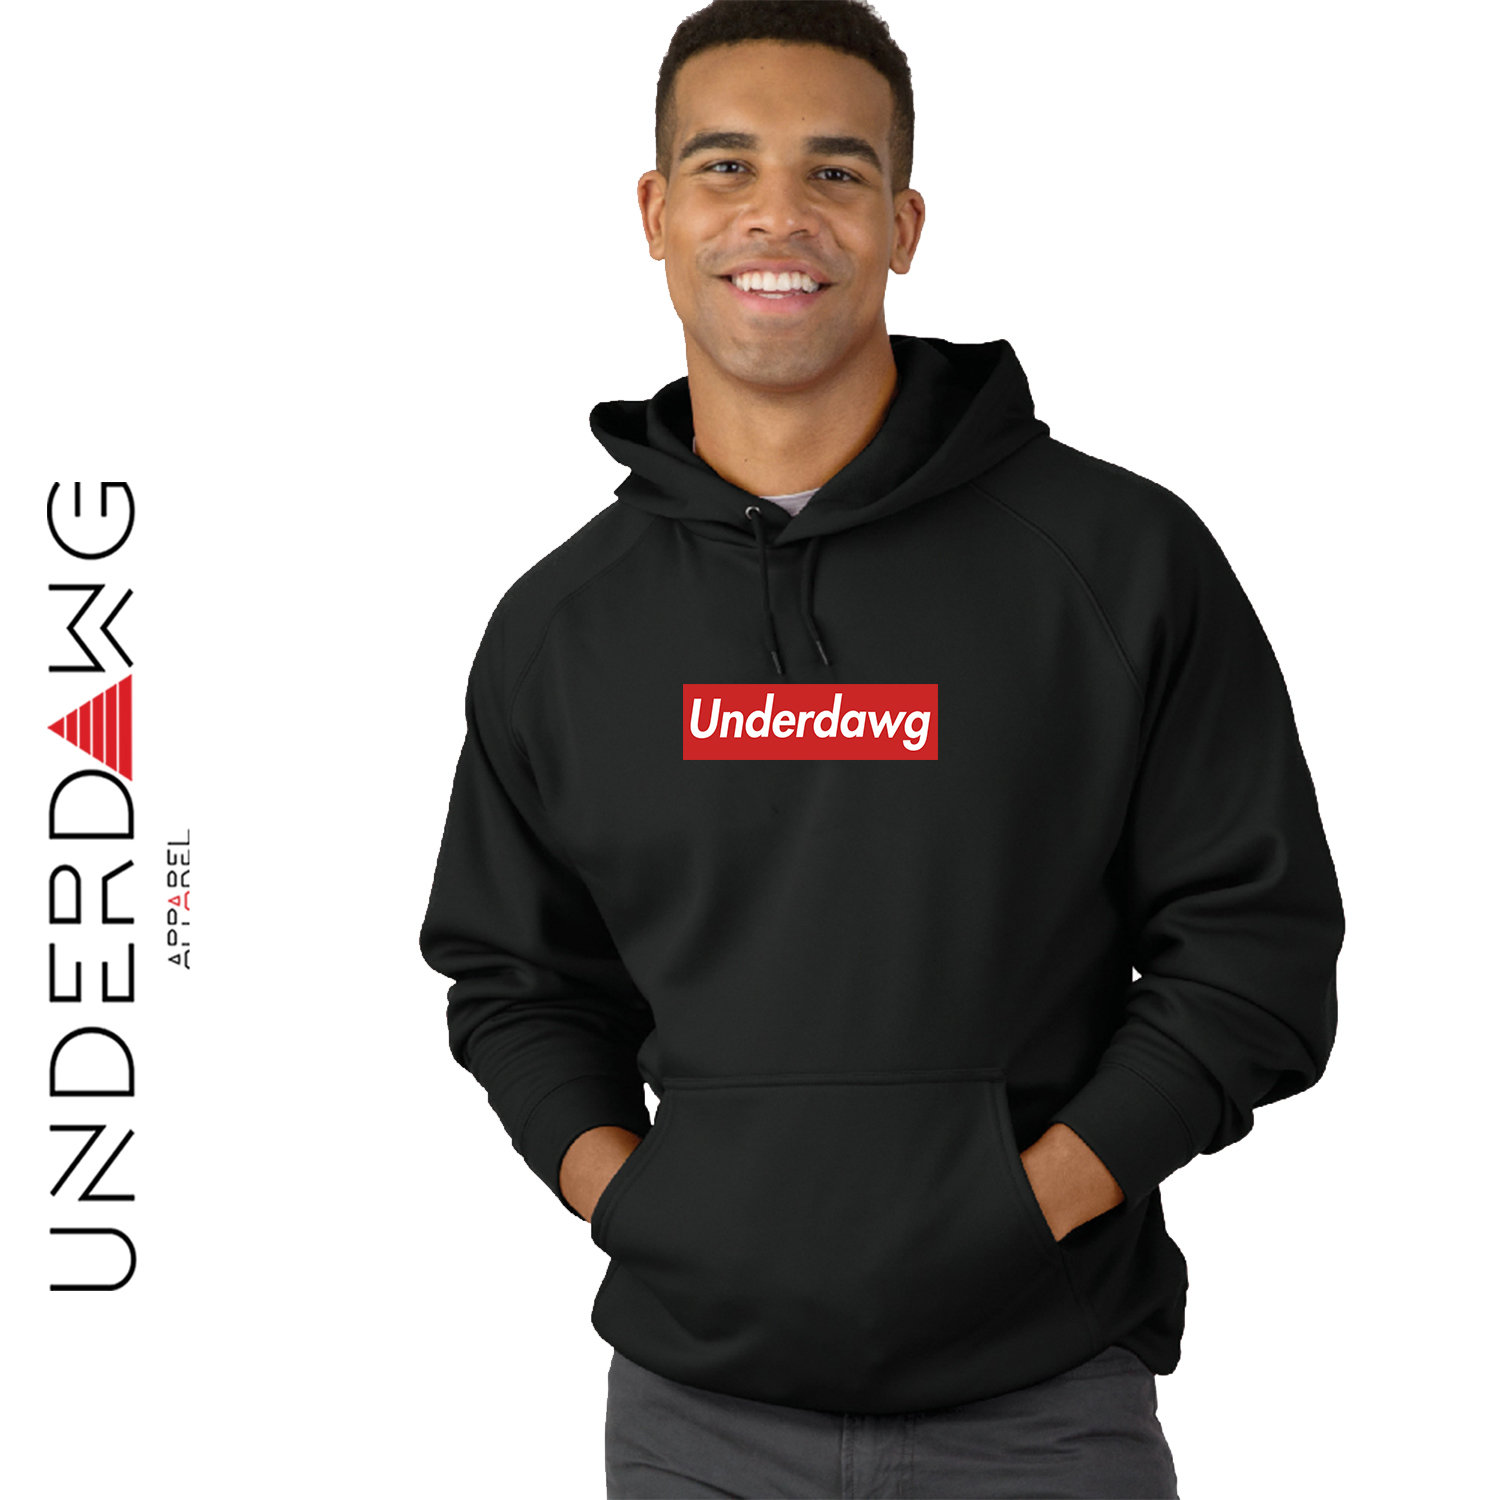 UnderDawg Statement Hooded Sweatshirt 00041